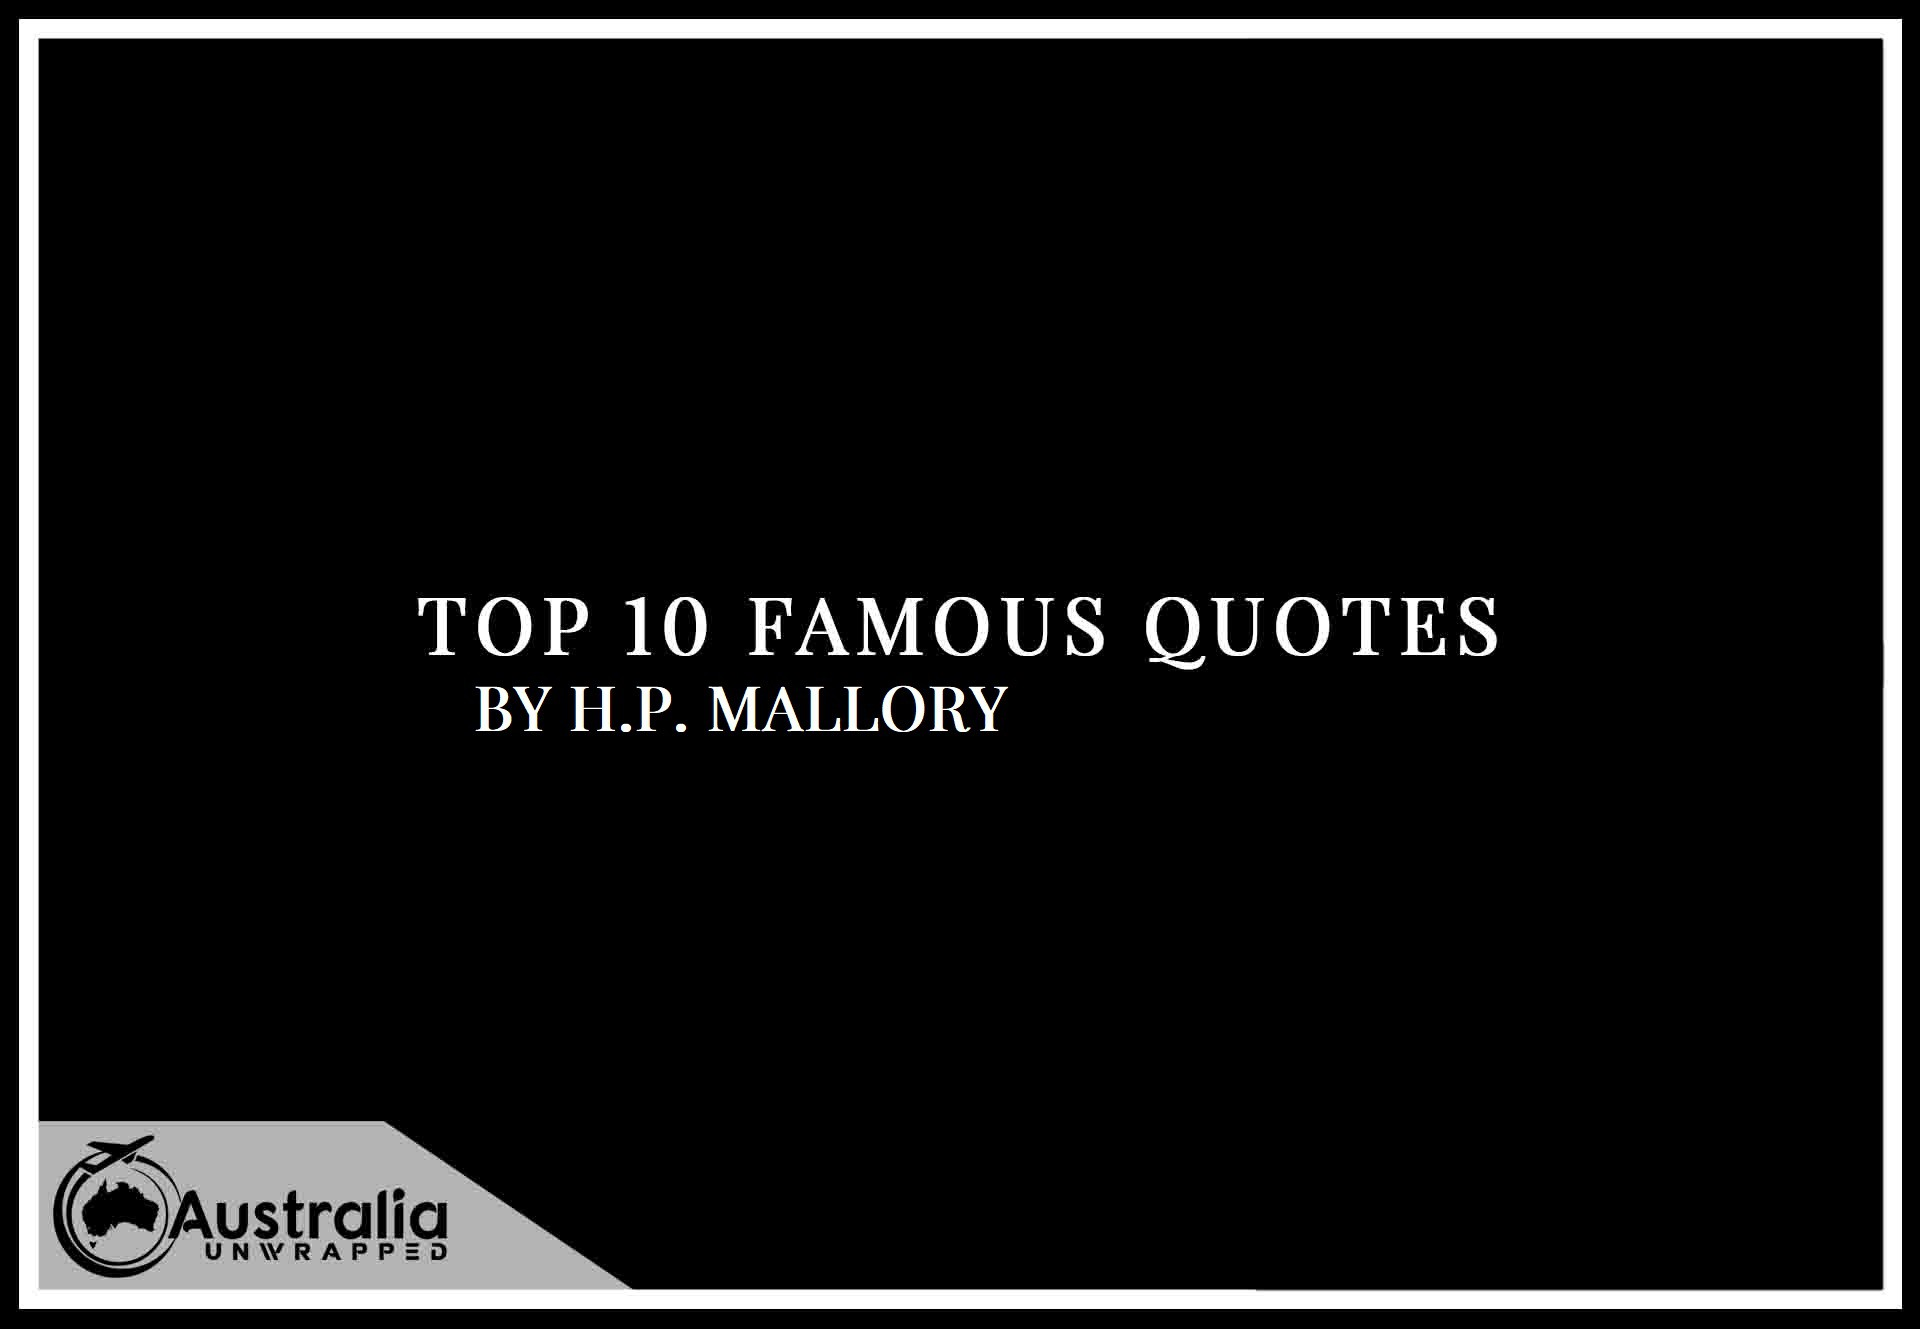 Top 10 Famous Quotes by Author H.P. Mallory